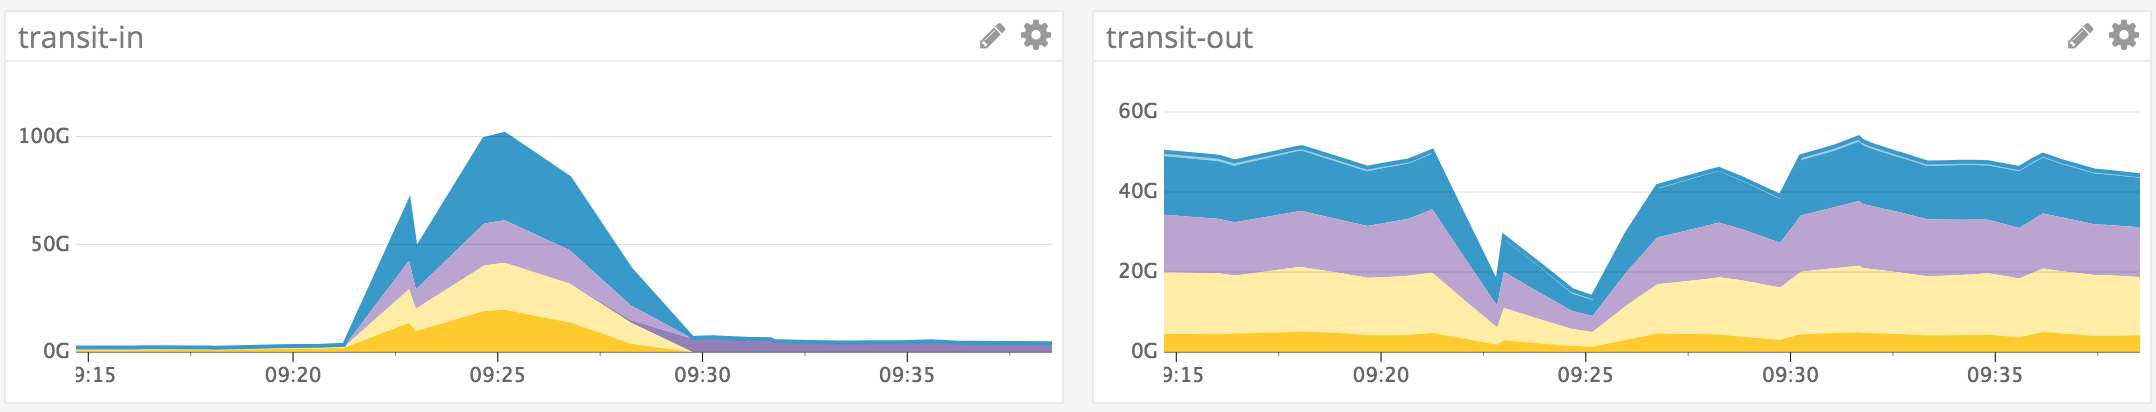 more inbound than outbound traffic graph